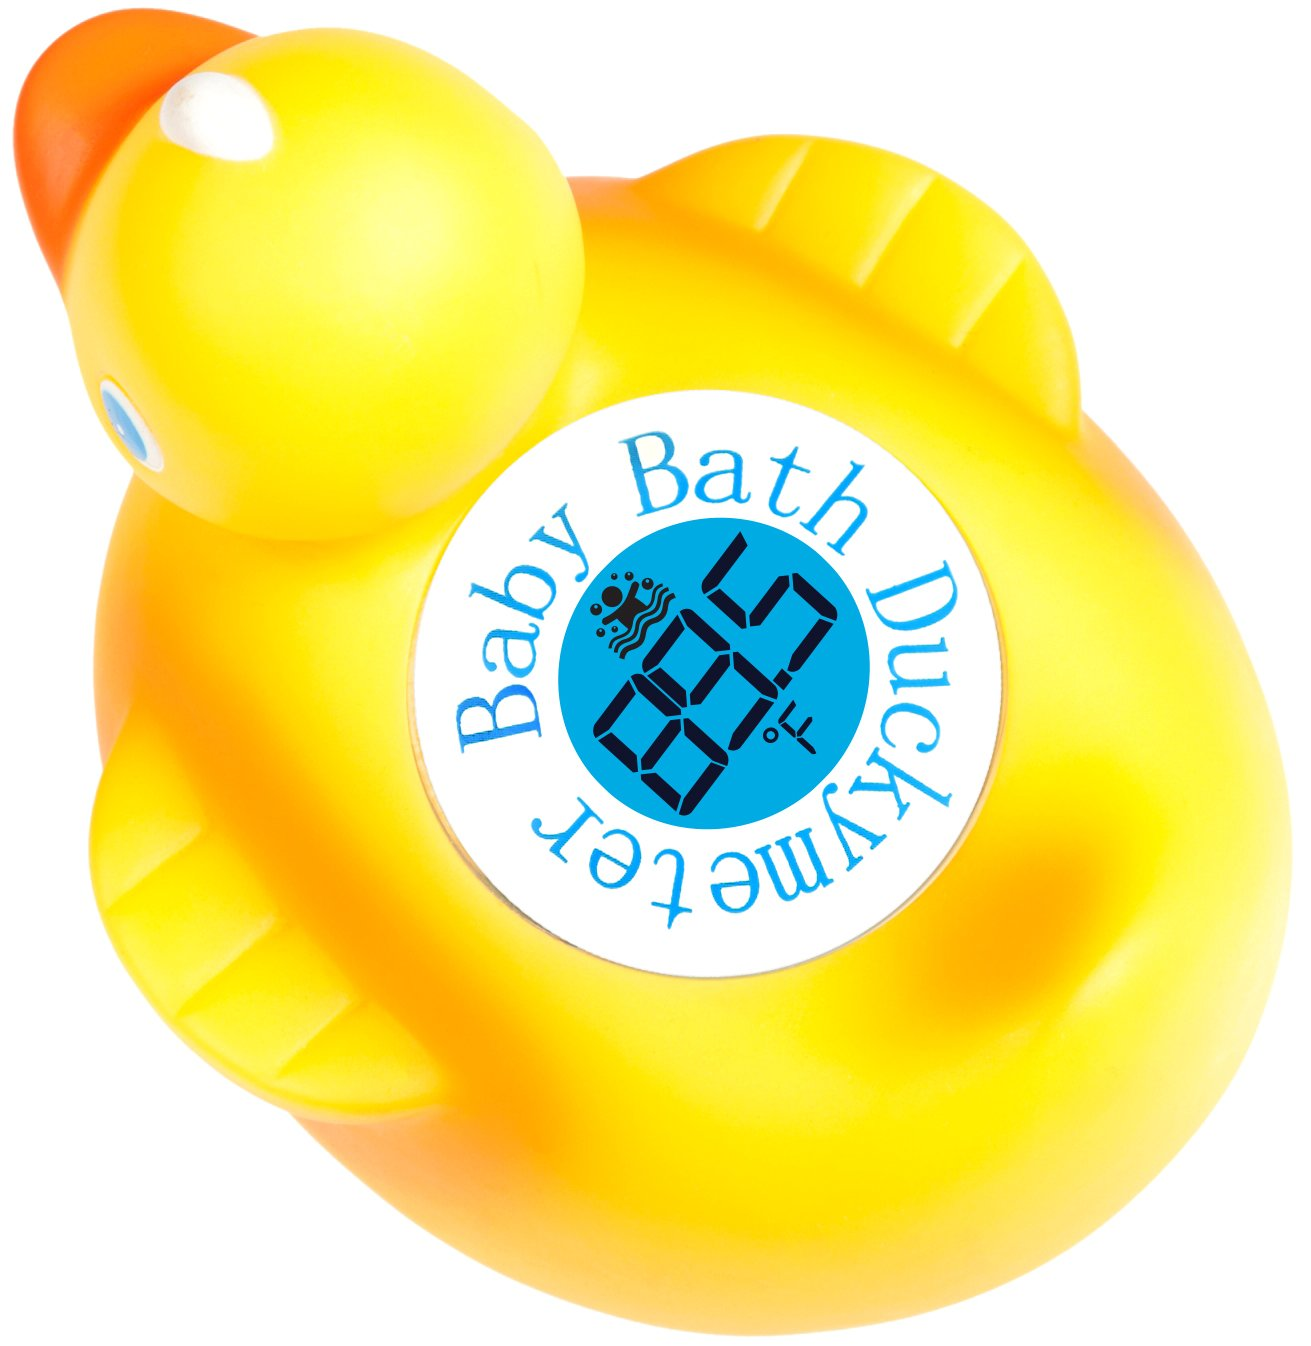 Amazon.com : Duckymeter, the Baby Bath Floating Duck Toy and Bath ...